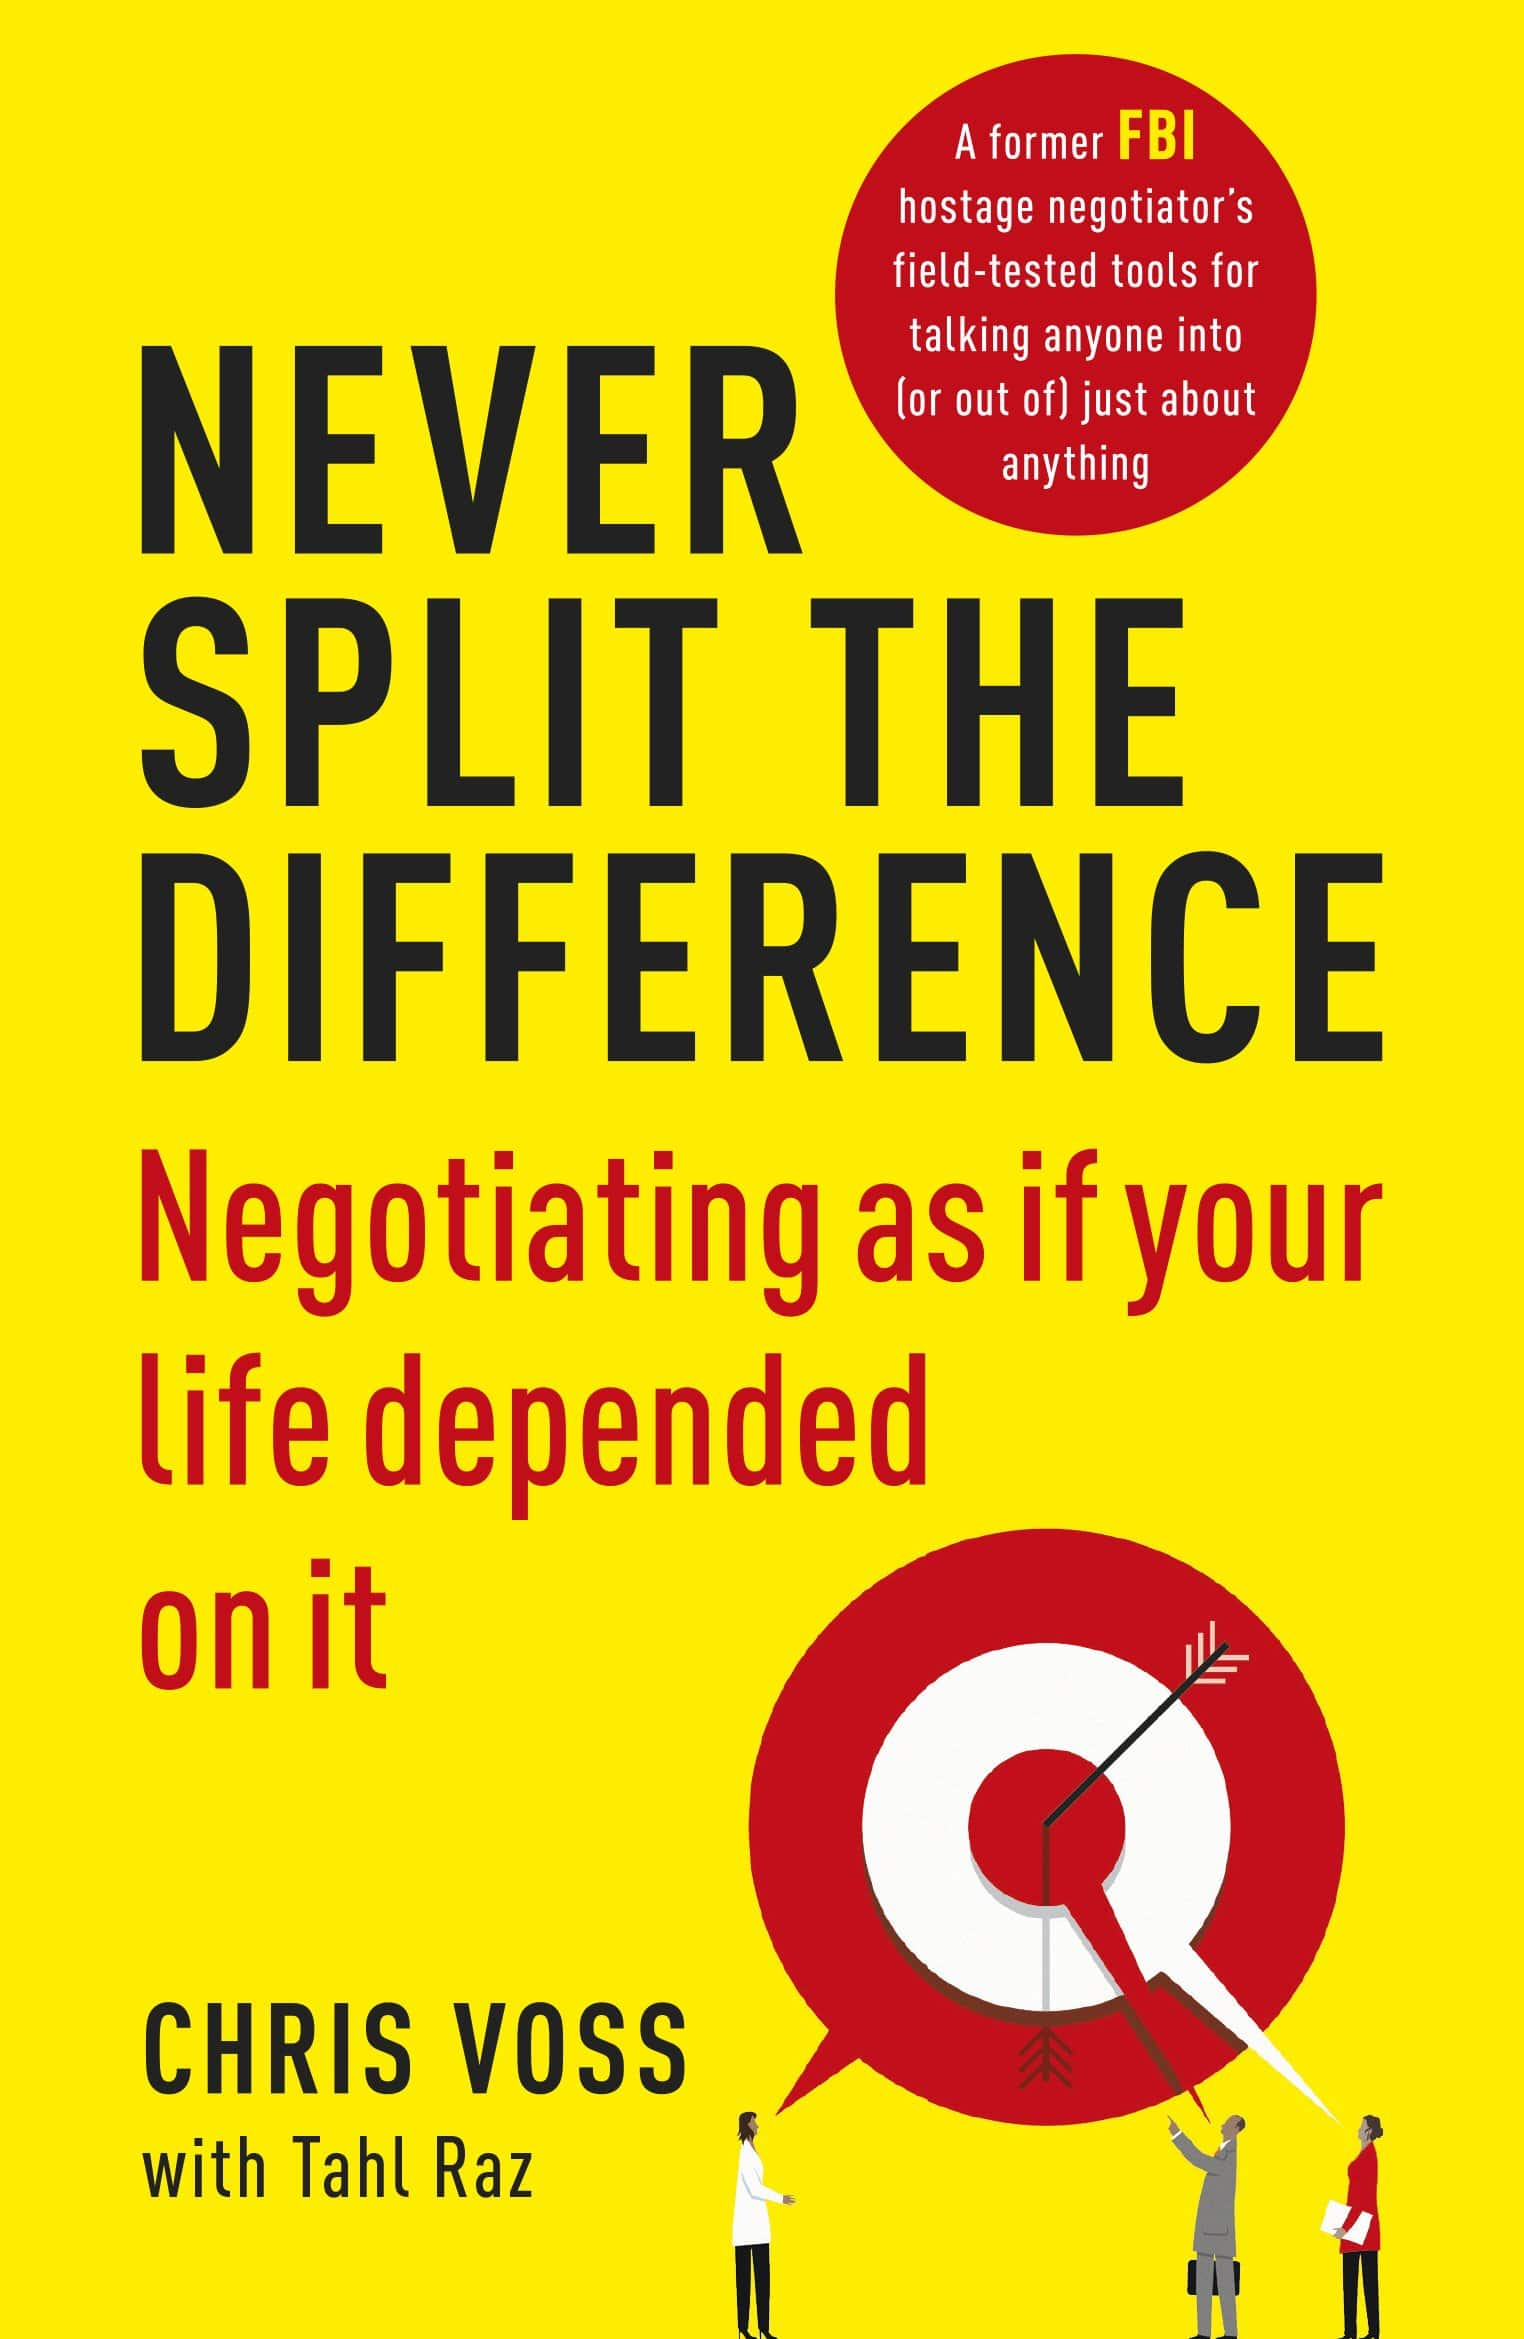 Never split the difference – negotiating as if your life depends on it